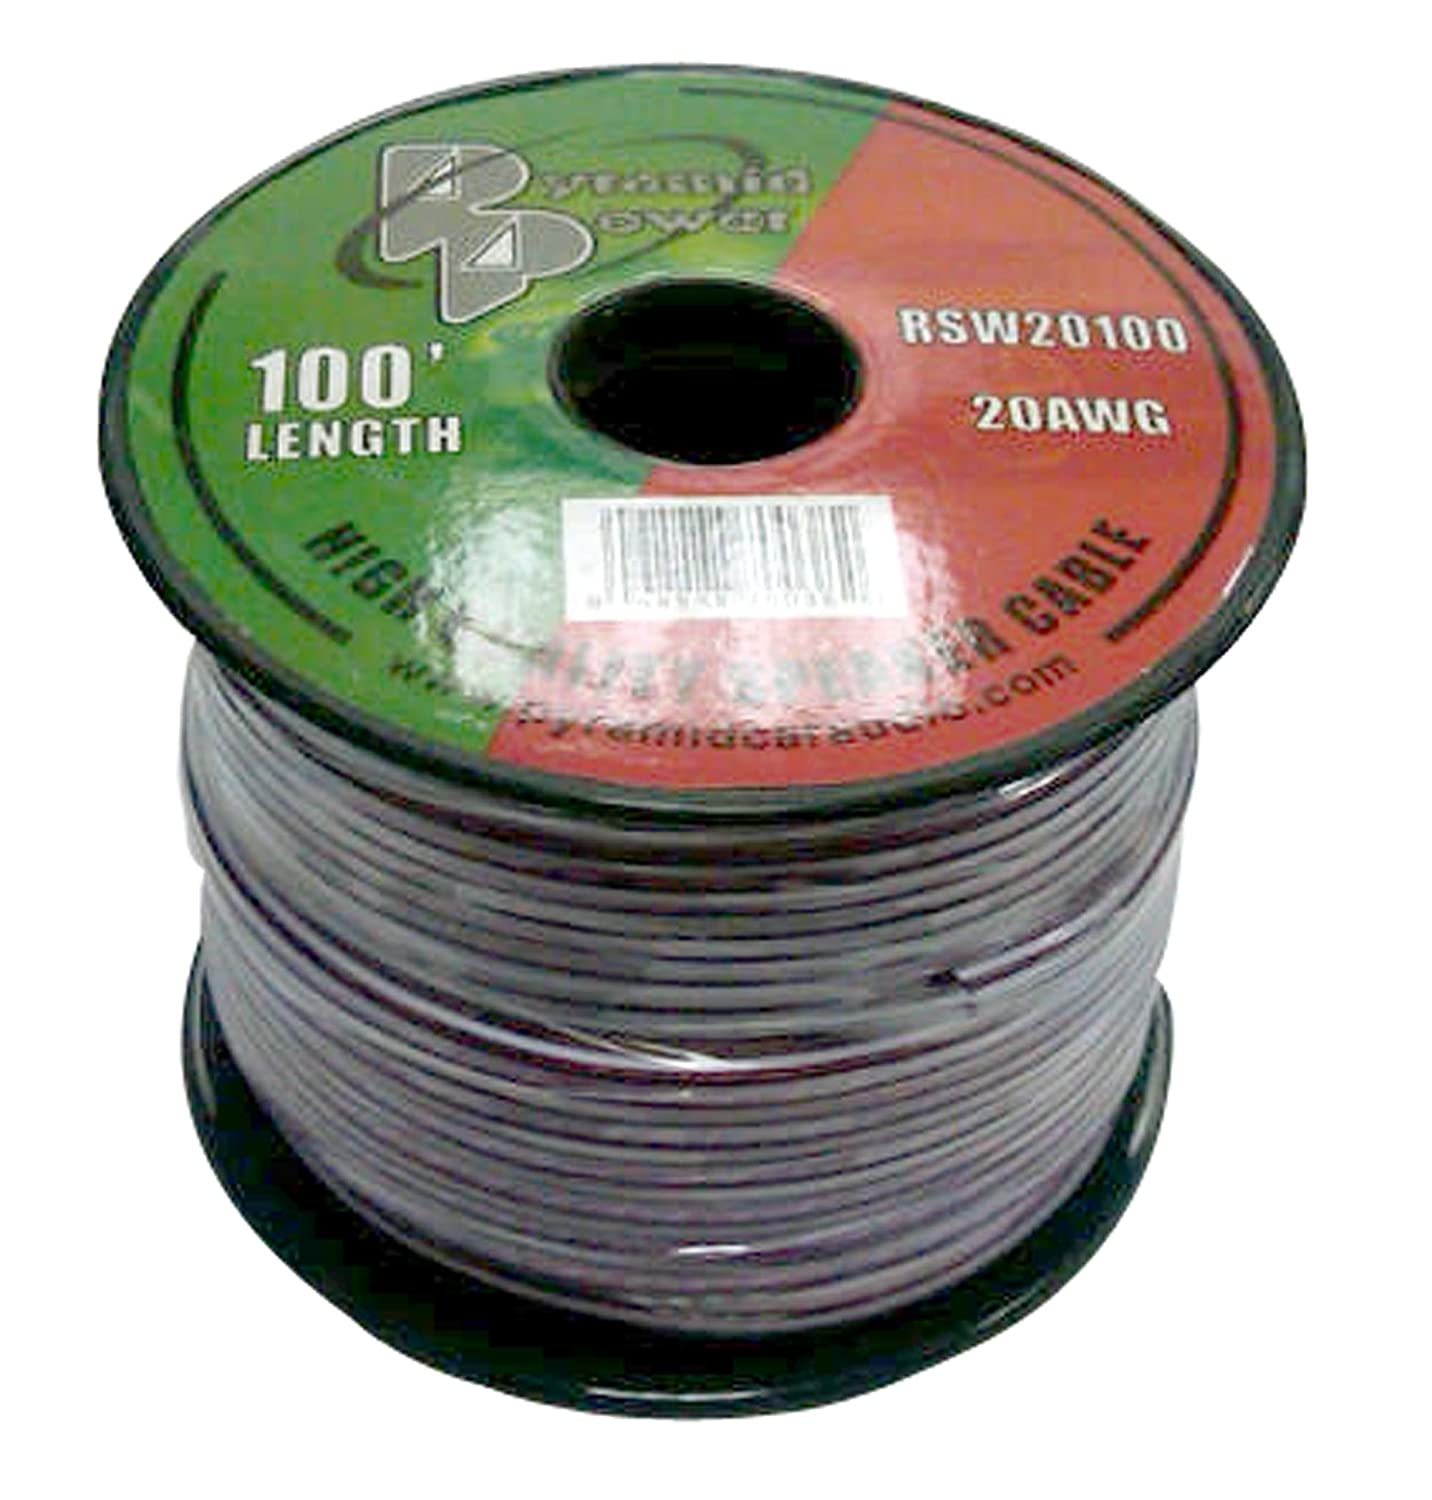 Pyramid RSW20100 20 Gauge 50 Feet Spool of High Quality Speaker Zip Wire Sound Around